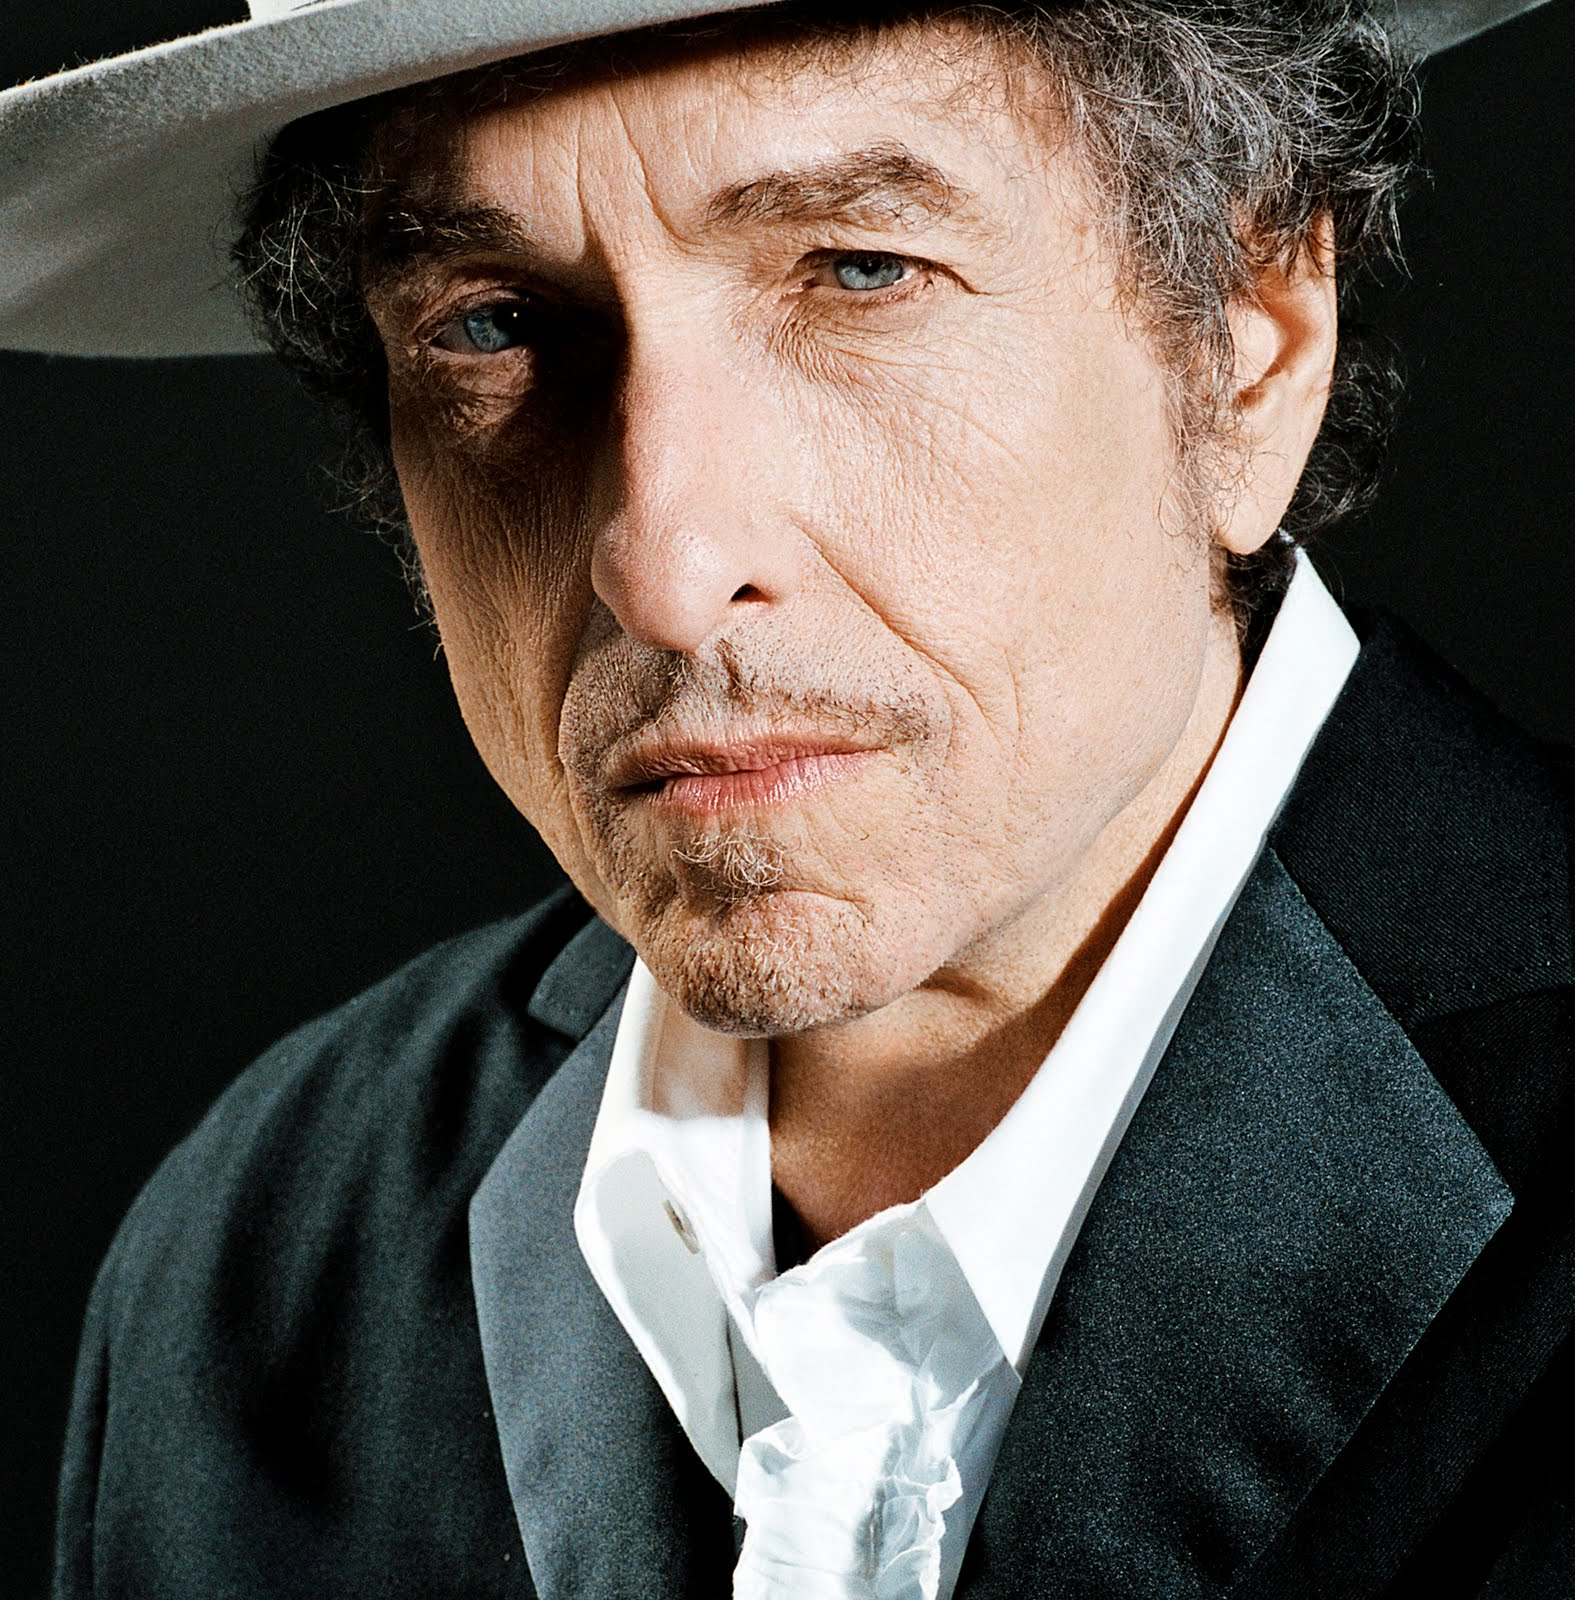 Bob dylan is 75 may 24 1941 timh eleven warriors for The dylan